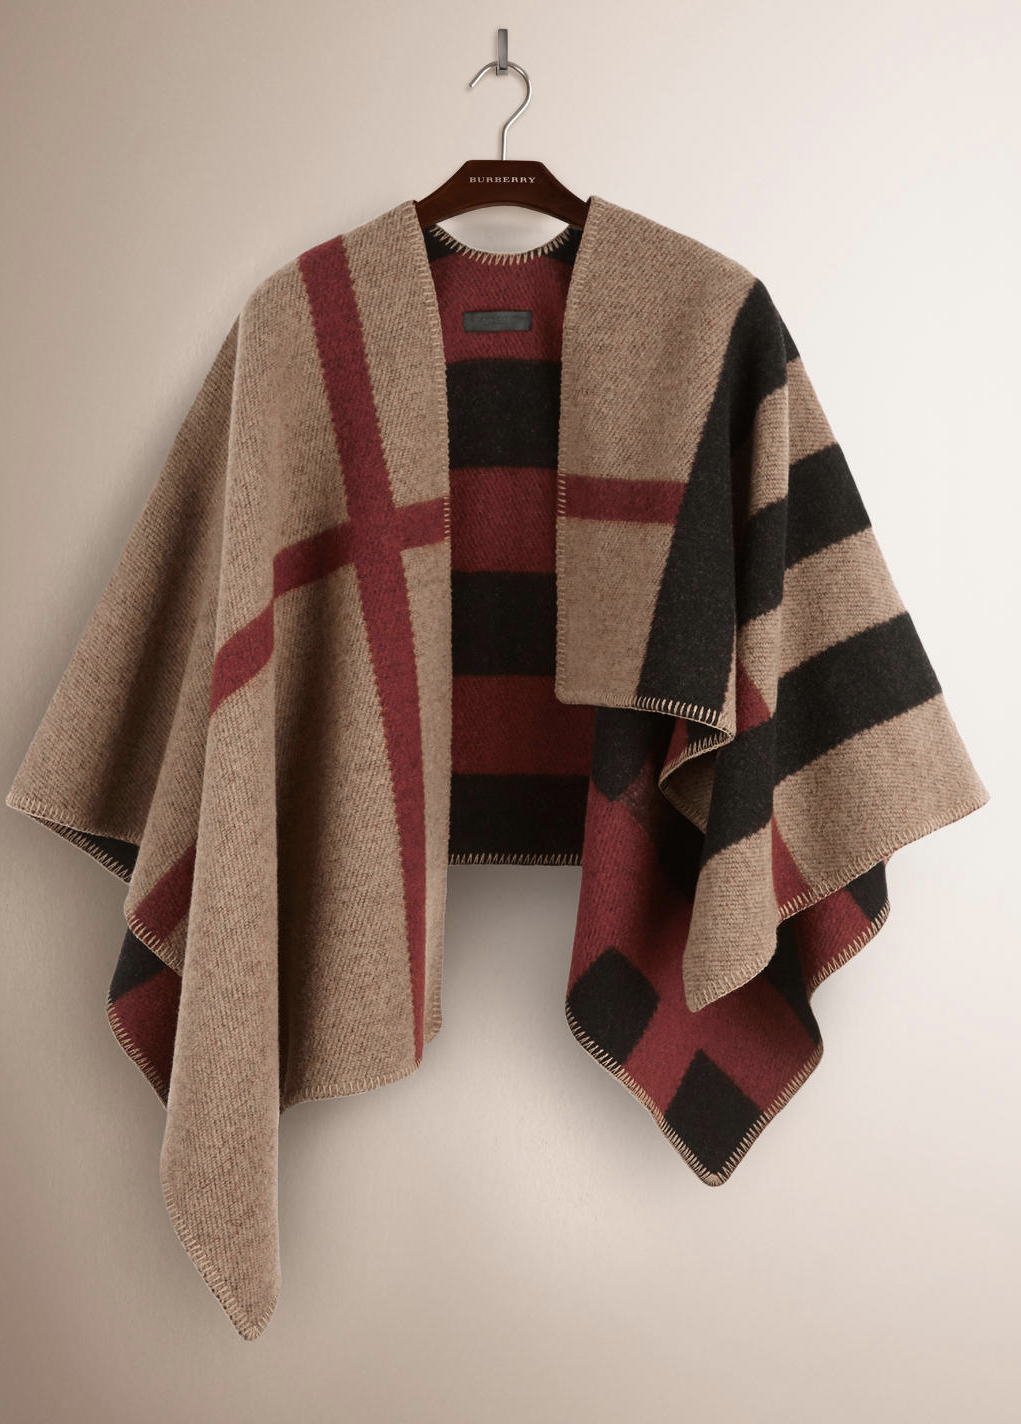 Burberry Iconic poncho. Wool and cashmere.